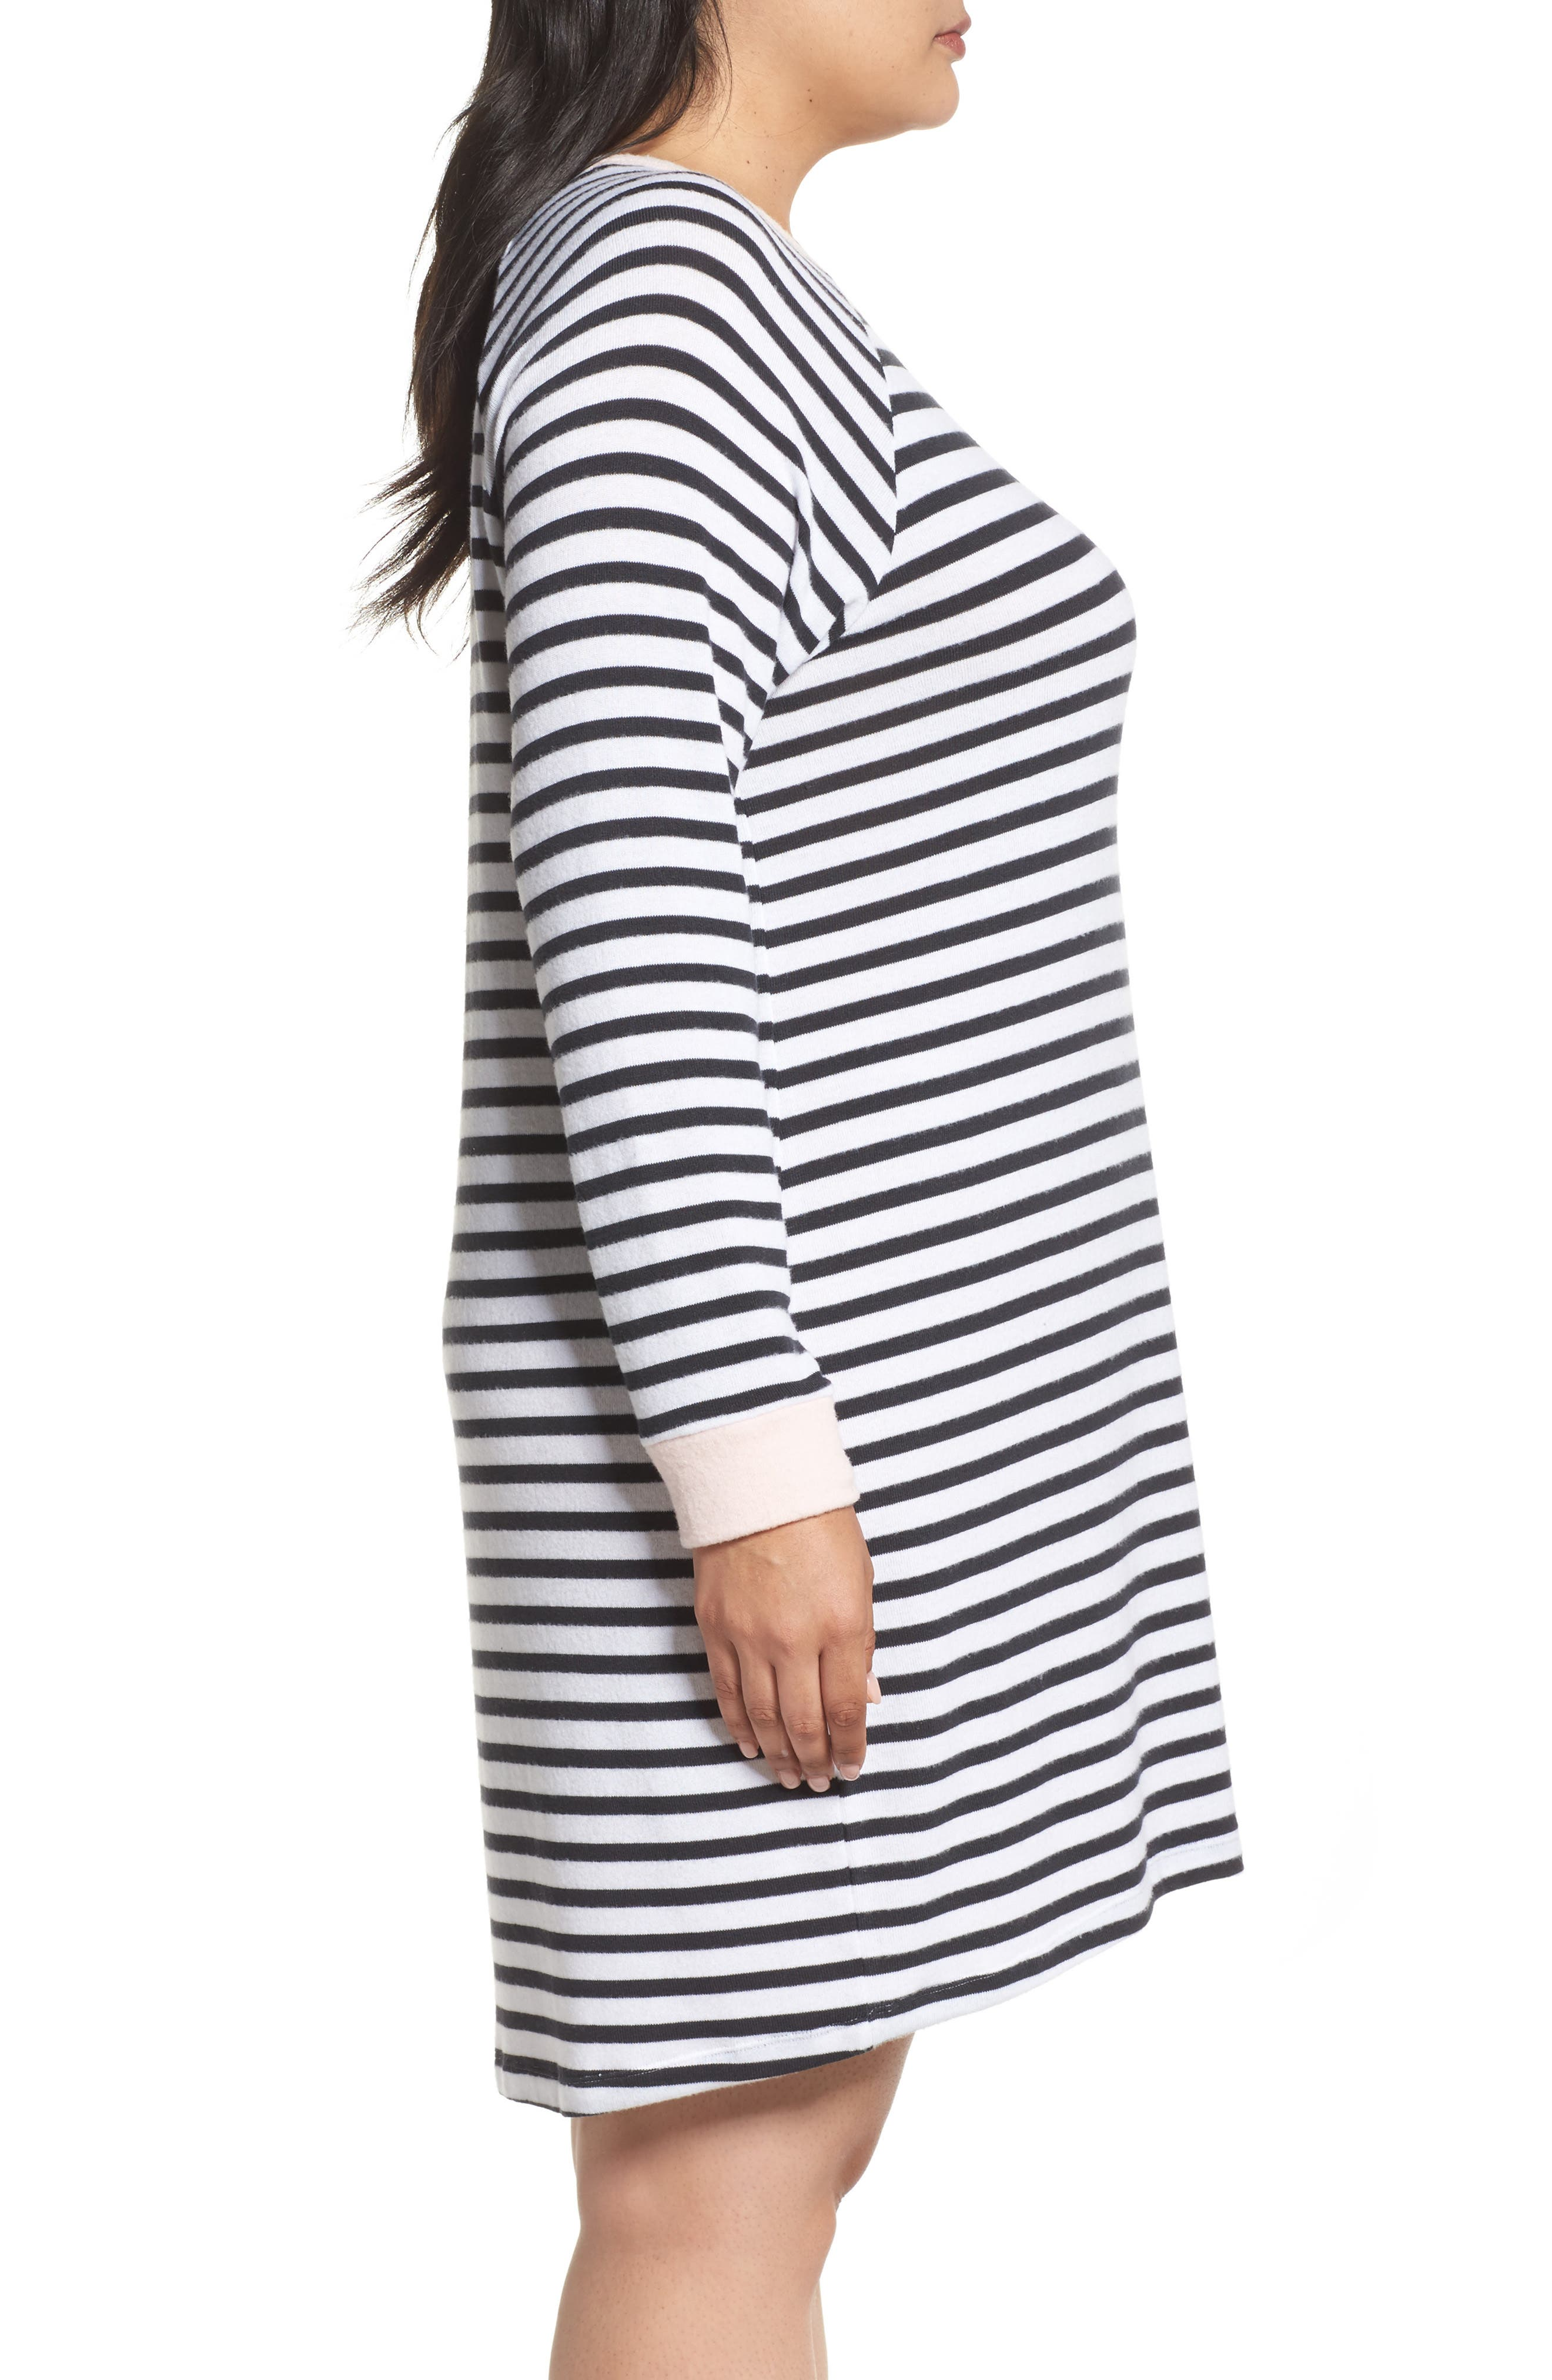 Stripe Peachy Jersey Nightshirt,                             Alternate thumbnail 3, color,                             900